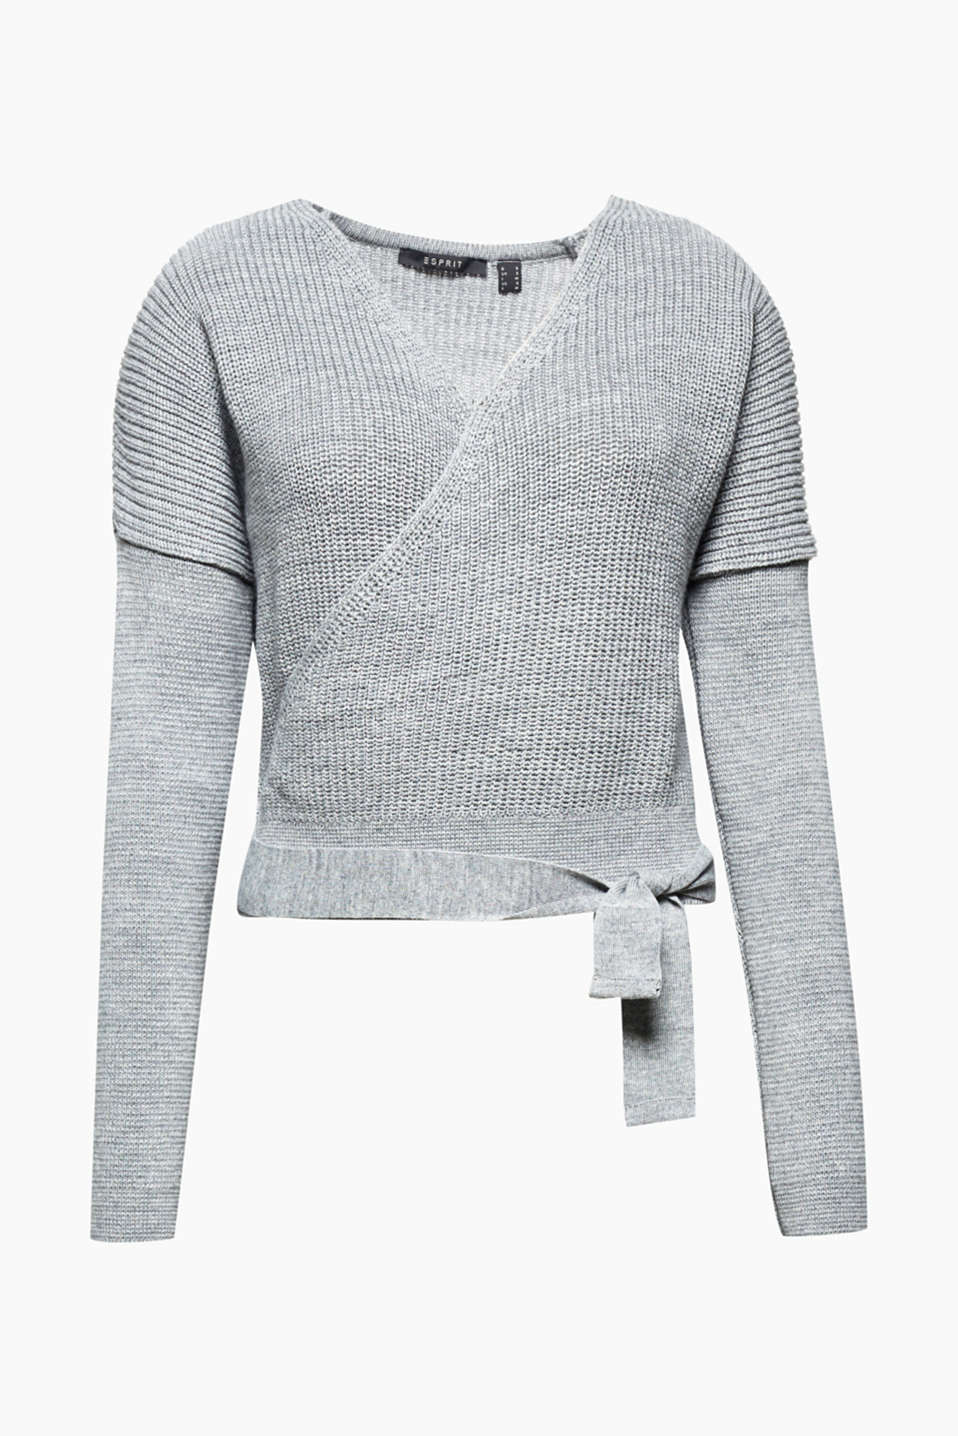 Brilliantly wrapped up: this feminine cardigan in a compact knit will be your favourite piece for between the seasons!